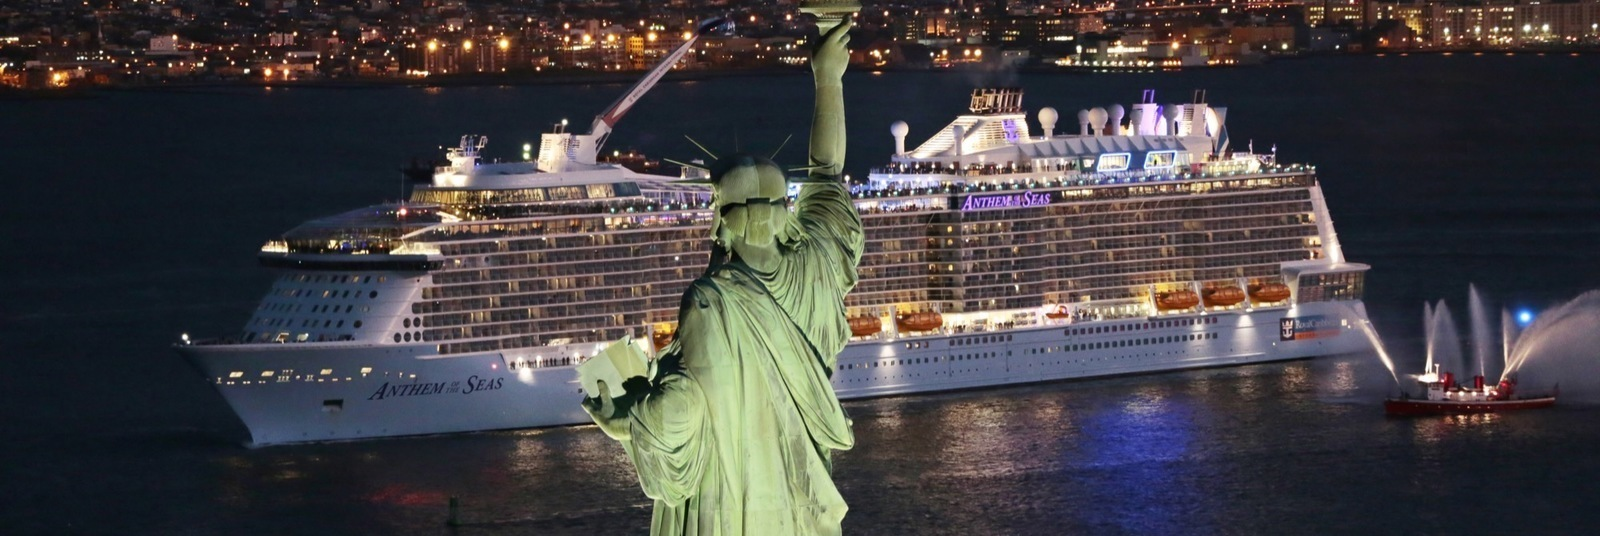 Homepage_large_royal_caribbean_international_anthem_of_the_seas_exterior_new_york